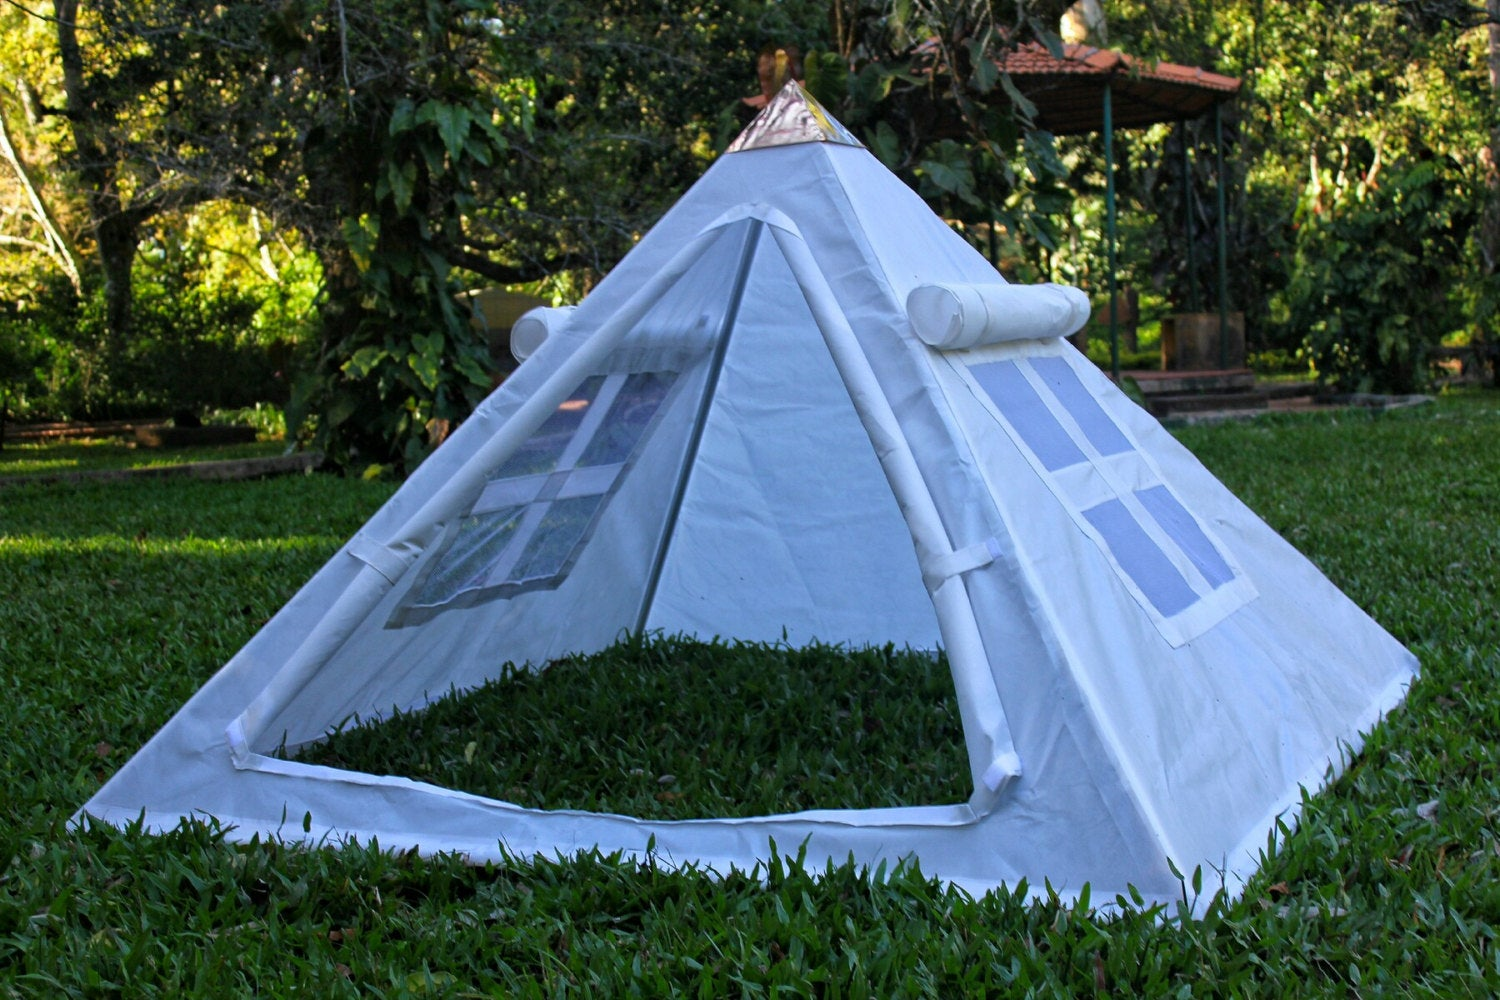 Fully Covered Copper Meditation Pyramid for Heart Chakra Activation